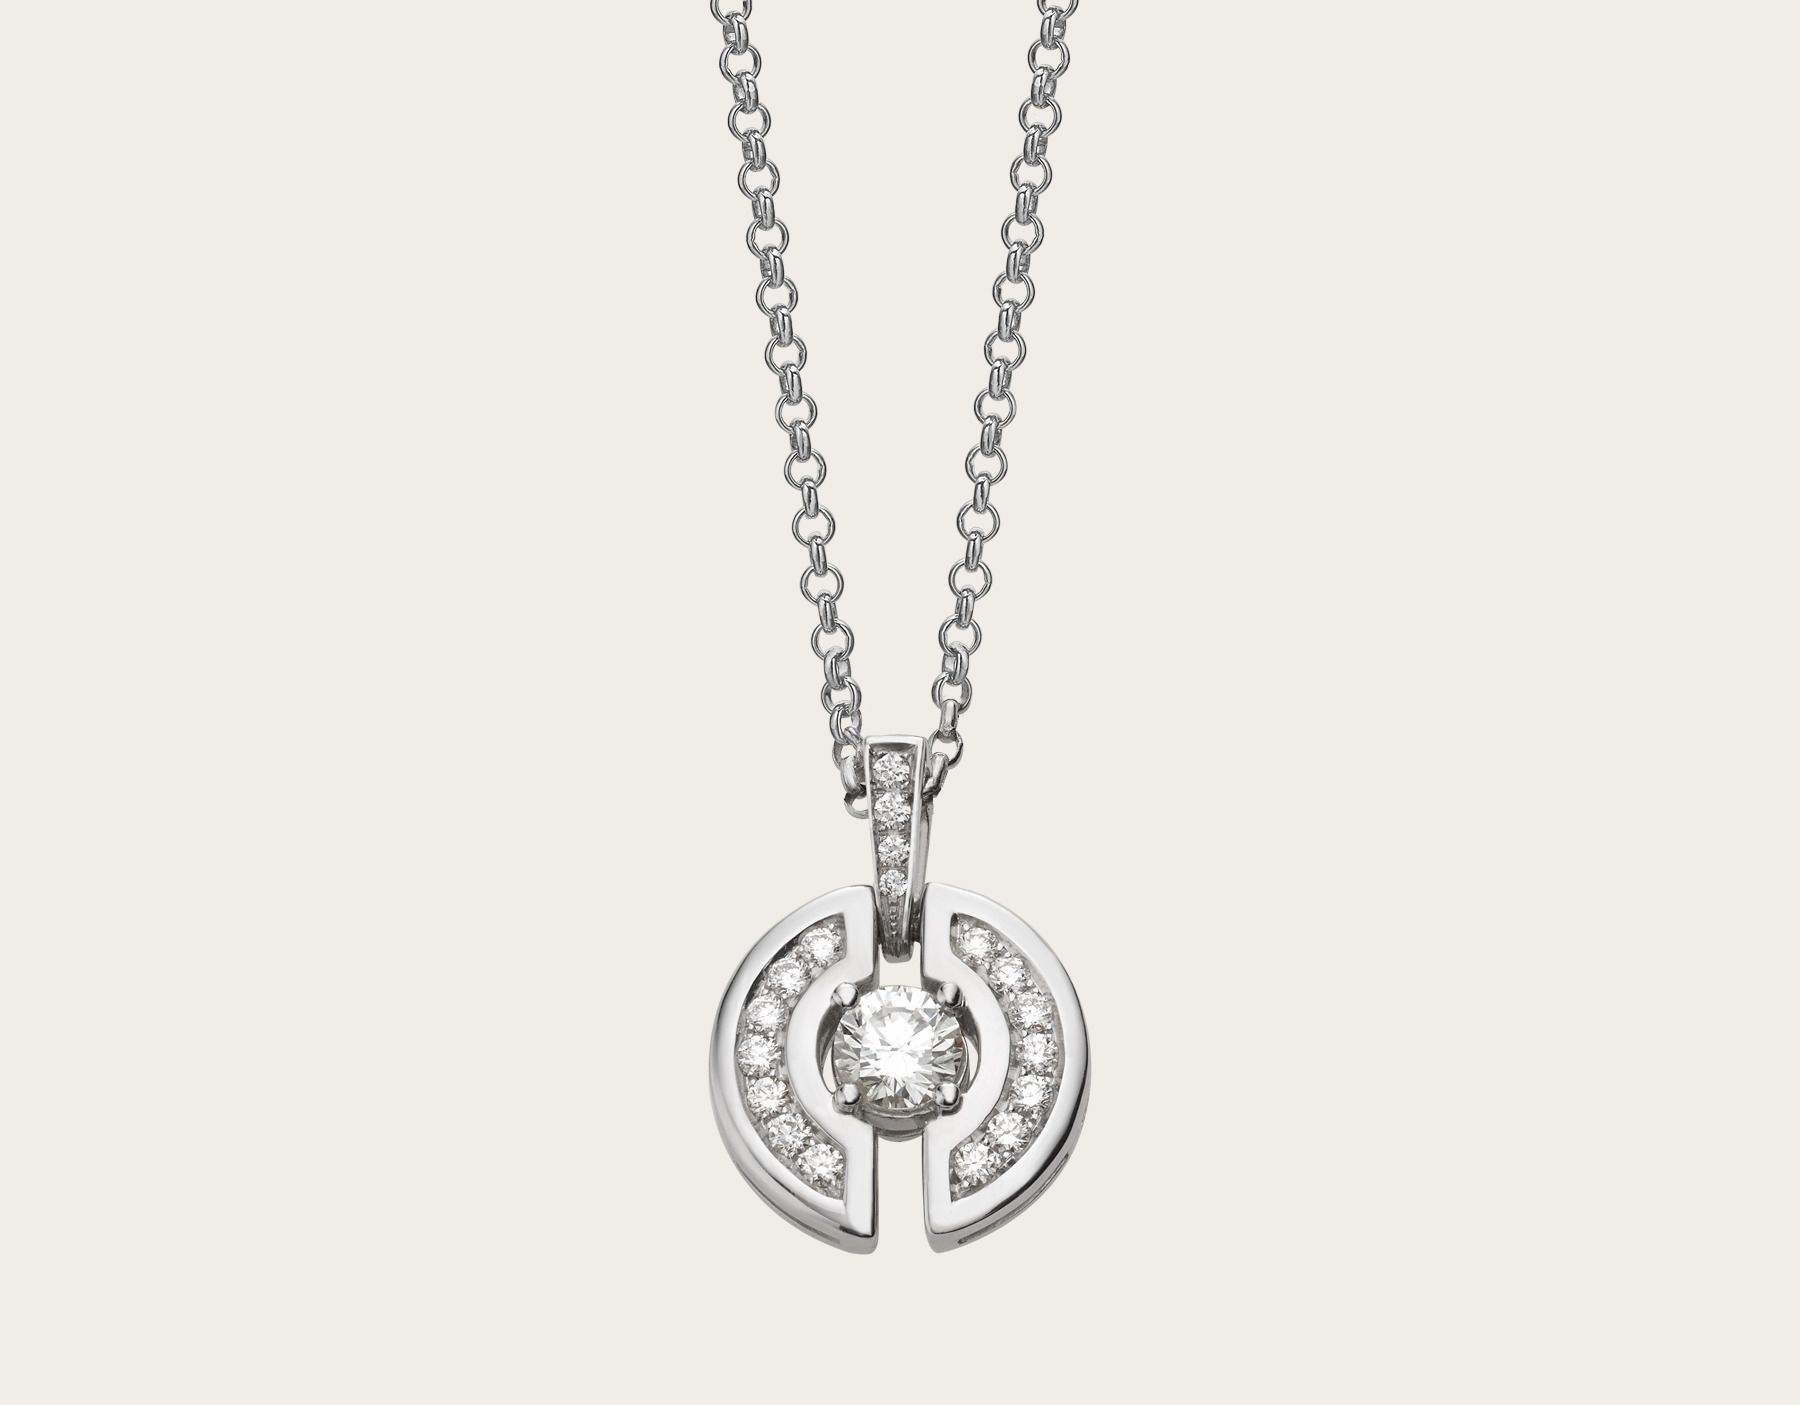 Parentesi necklace with kt white gold chain and pendant set with